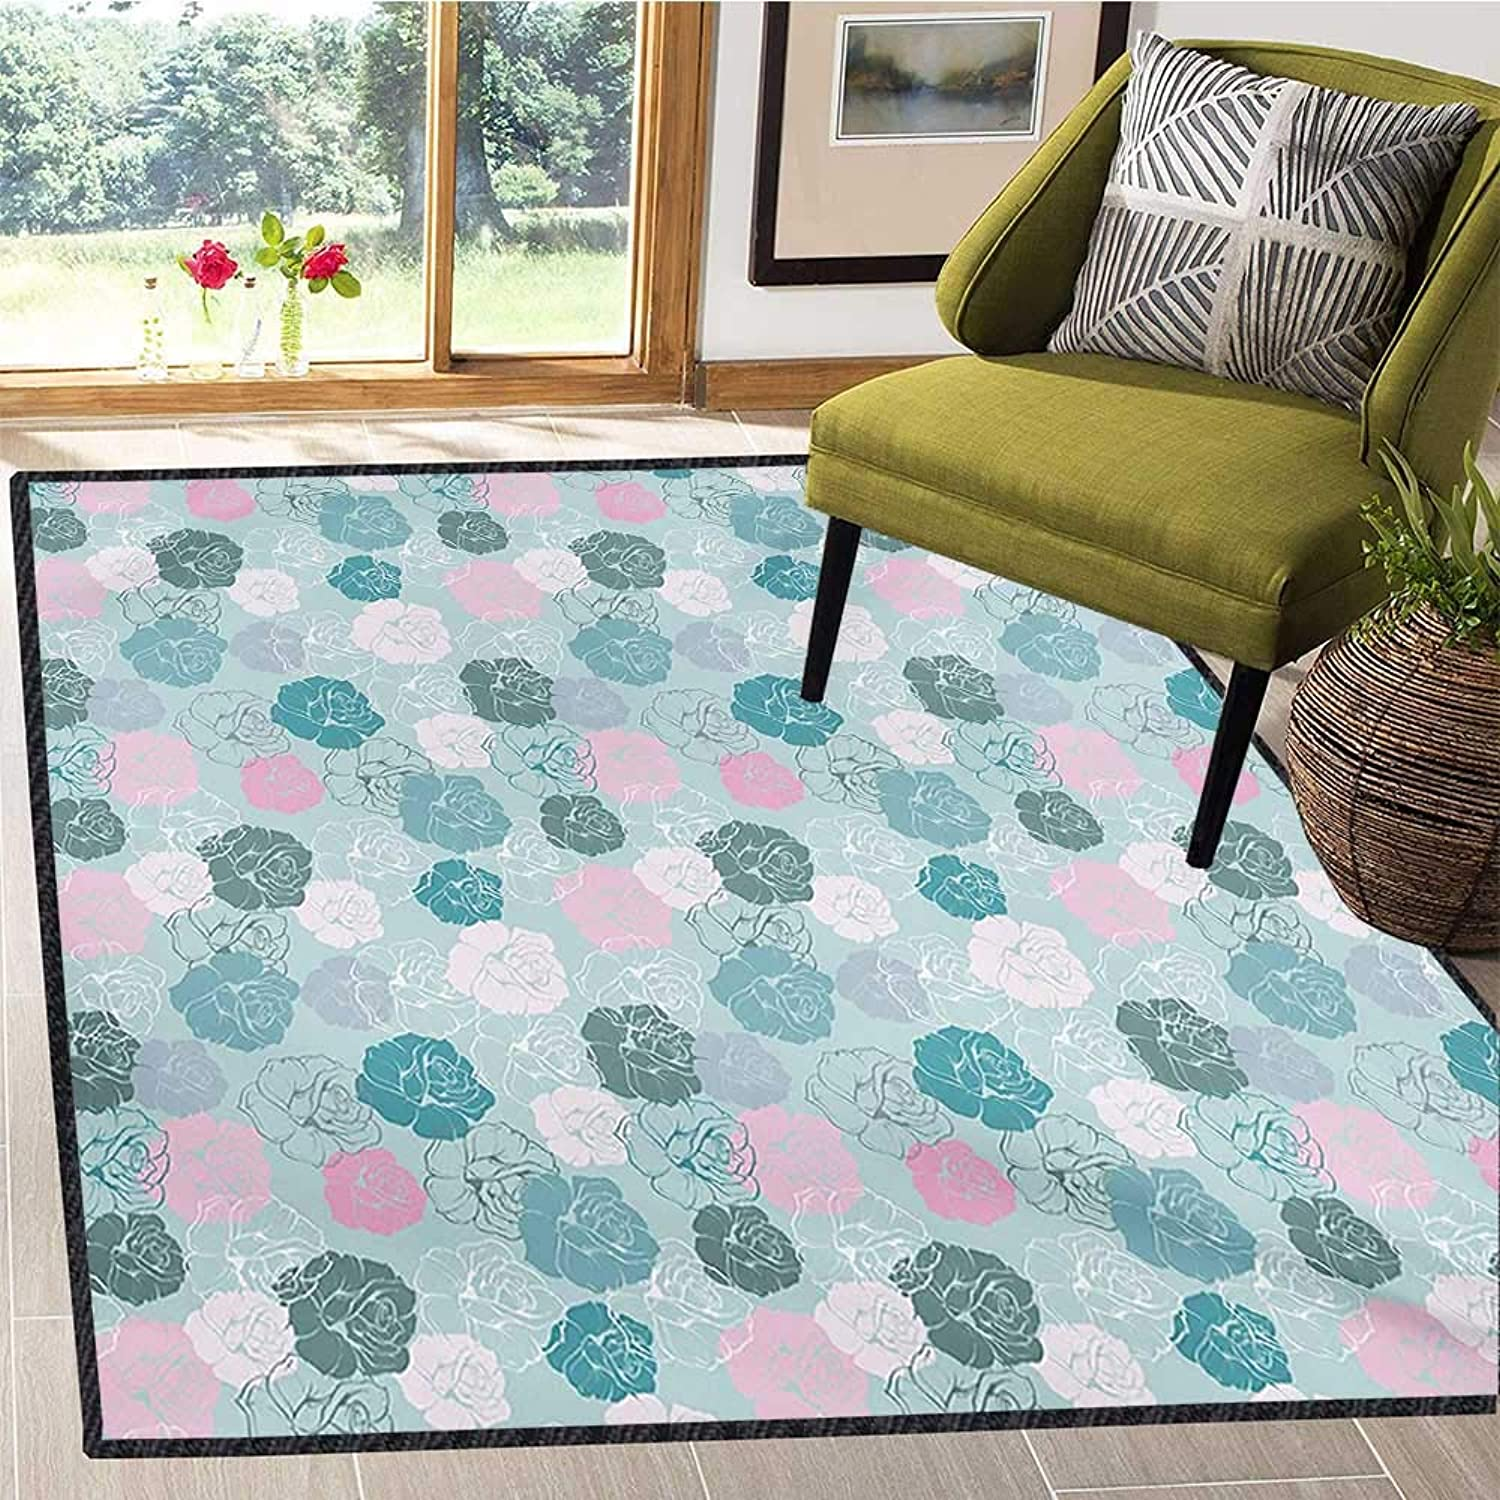 Navy and bluesh, Area Rug Non Slip, Retro Style pink Motifs Silhouettes Romantic Fantasy Seasonal Garden, Door Mats for Inside Non Slip Backing 6x7 Ft Seafoam Pink White